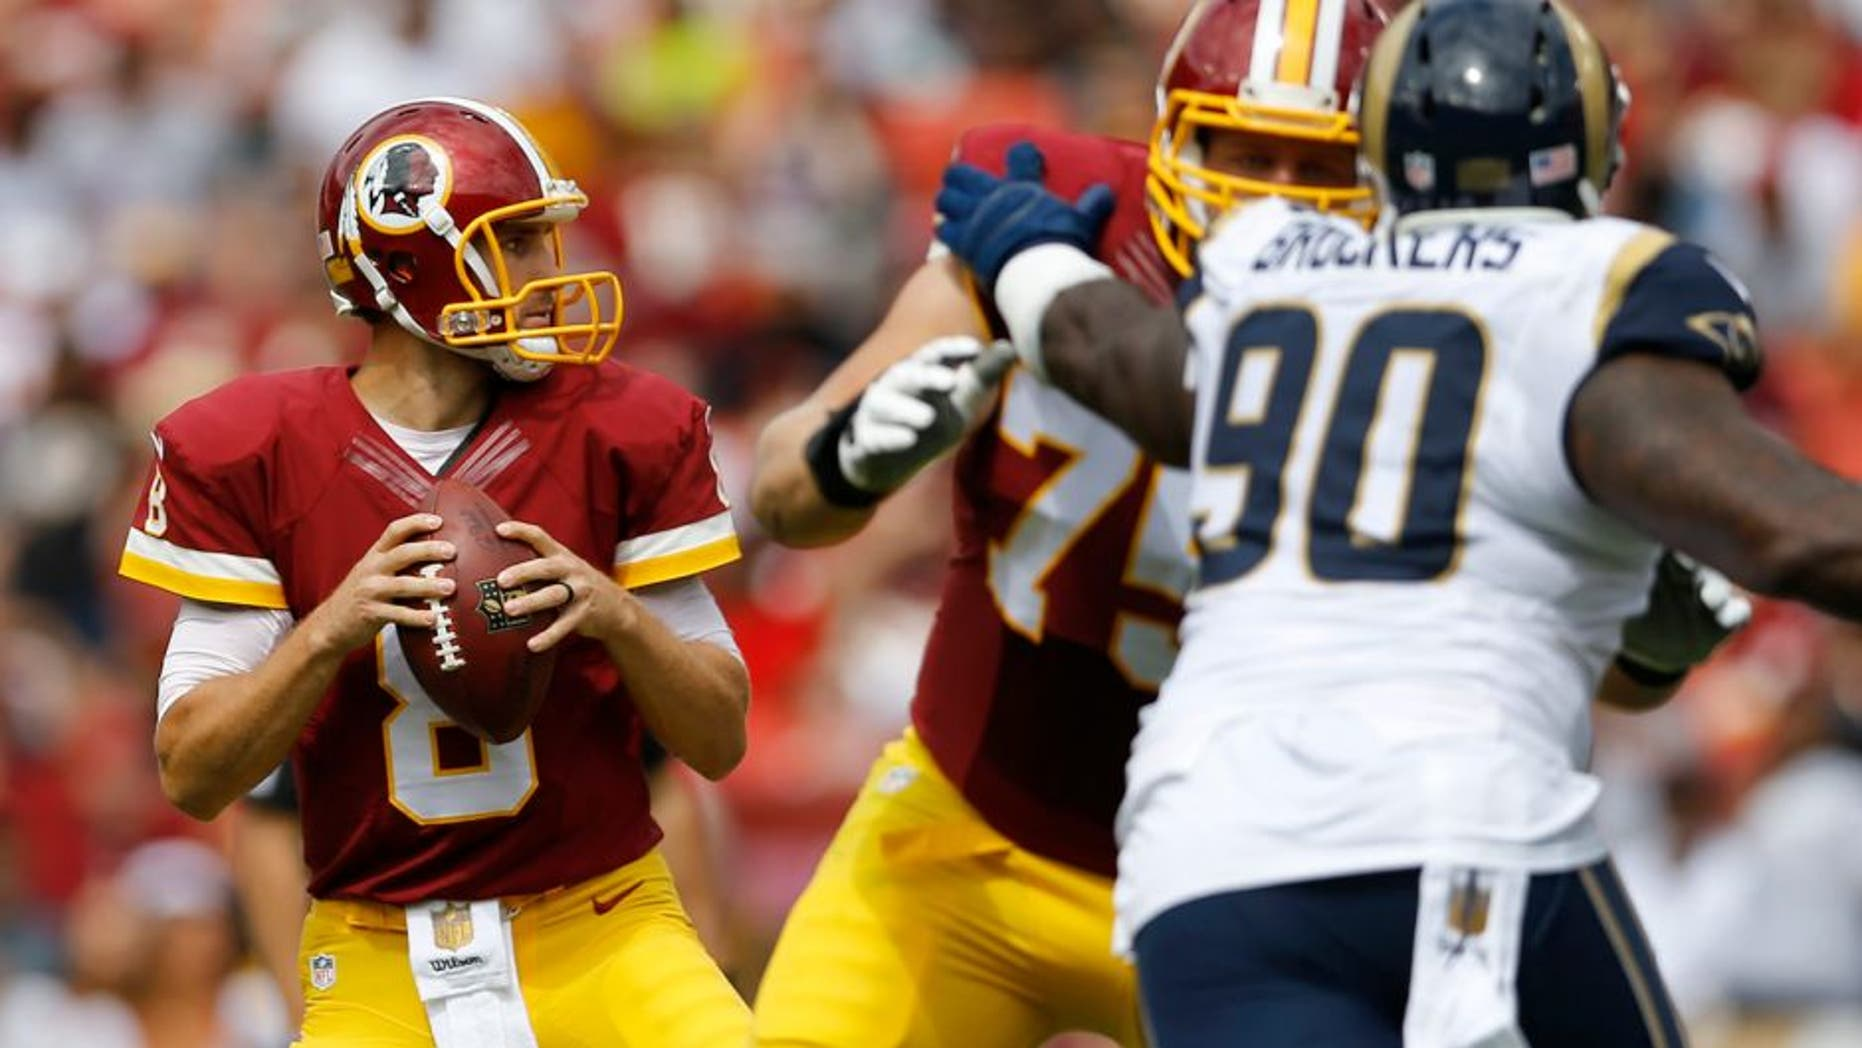 Washington Redskins quarterback Kirk Cousins (8) looks for an opening to pass during the first half of an NFL football game against the St. Louis Rams in Landover, Md., Sunday, Sept. 20, 2015. (AP Photo/Patrick Semansky)